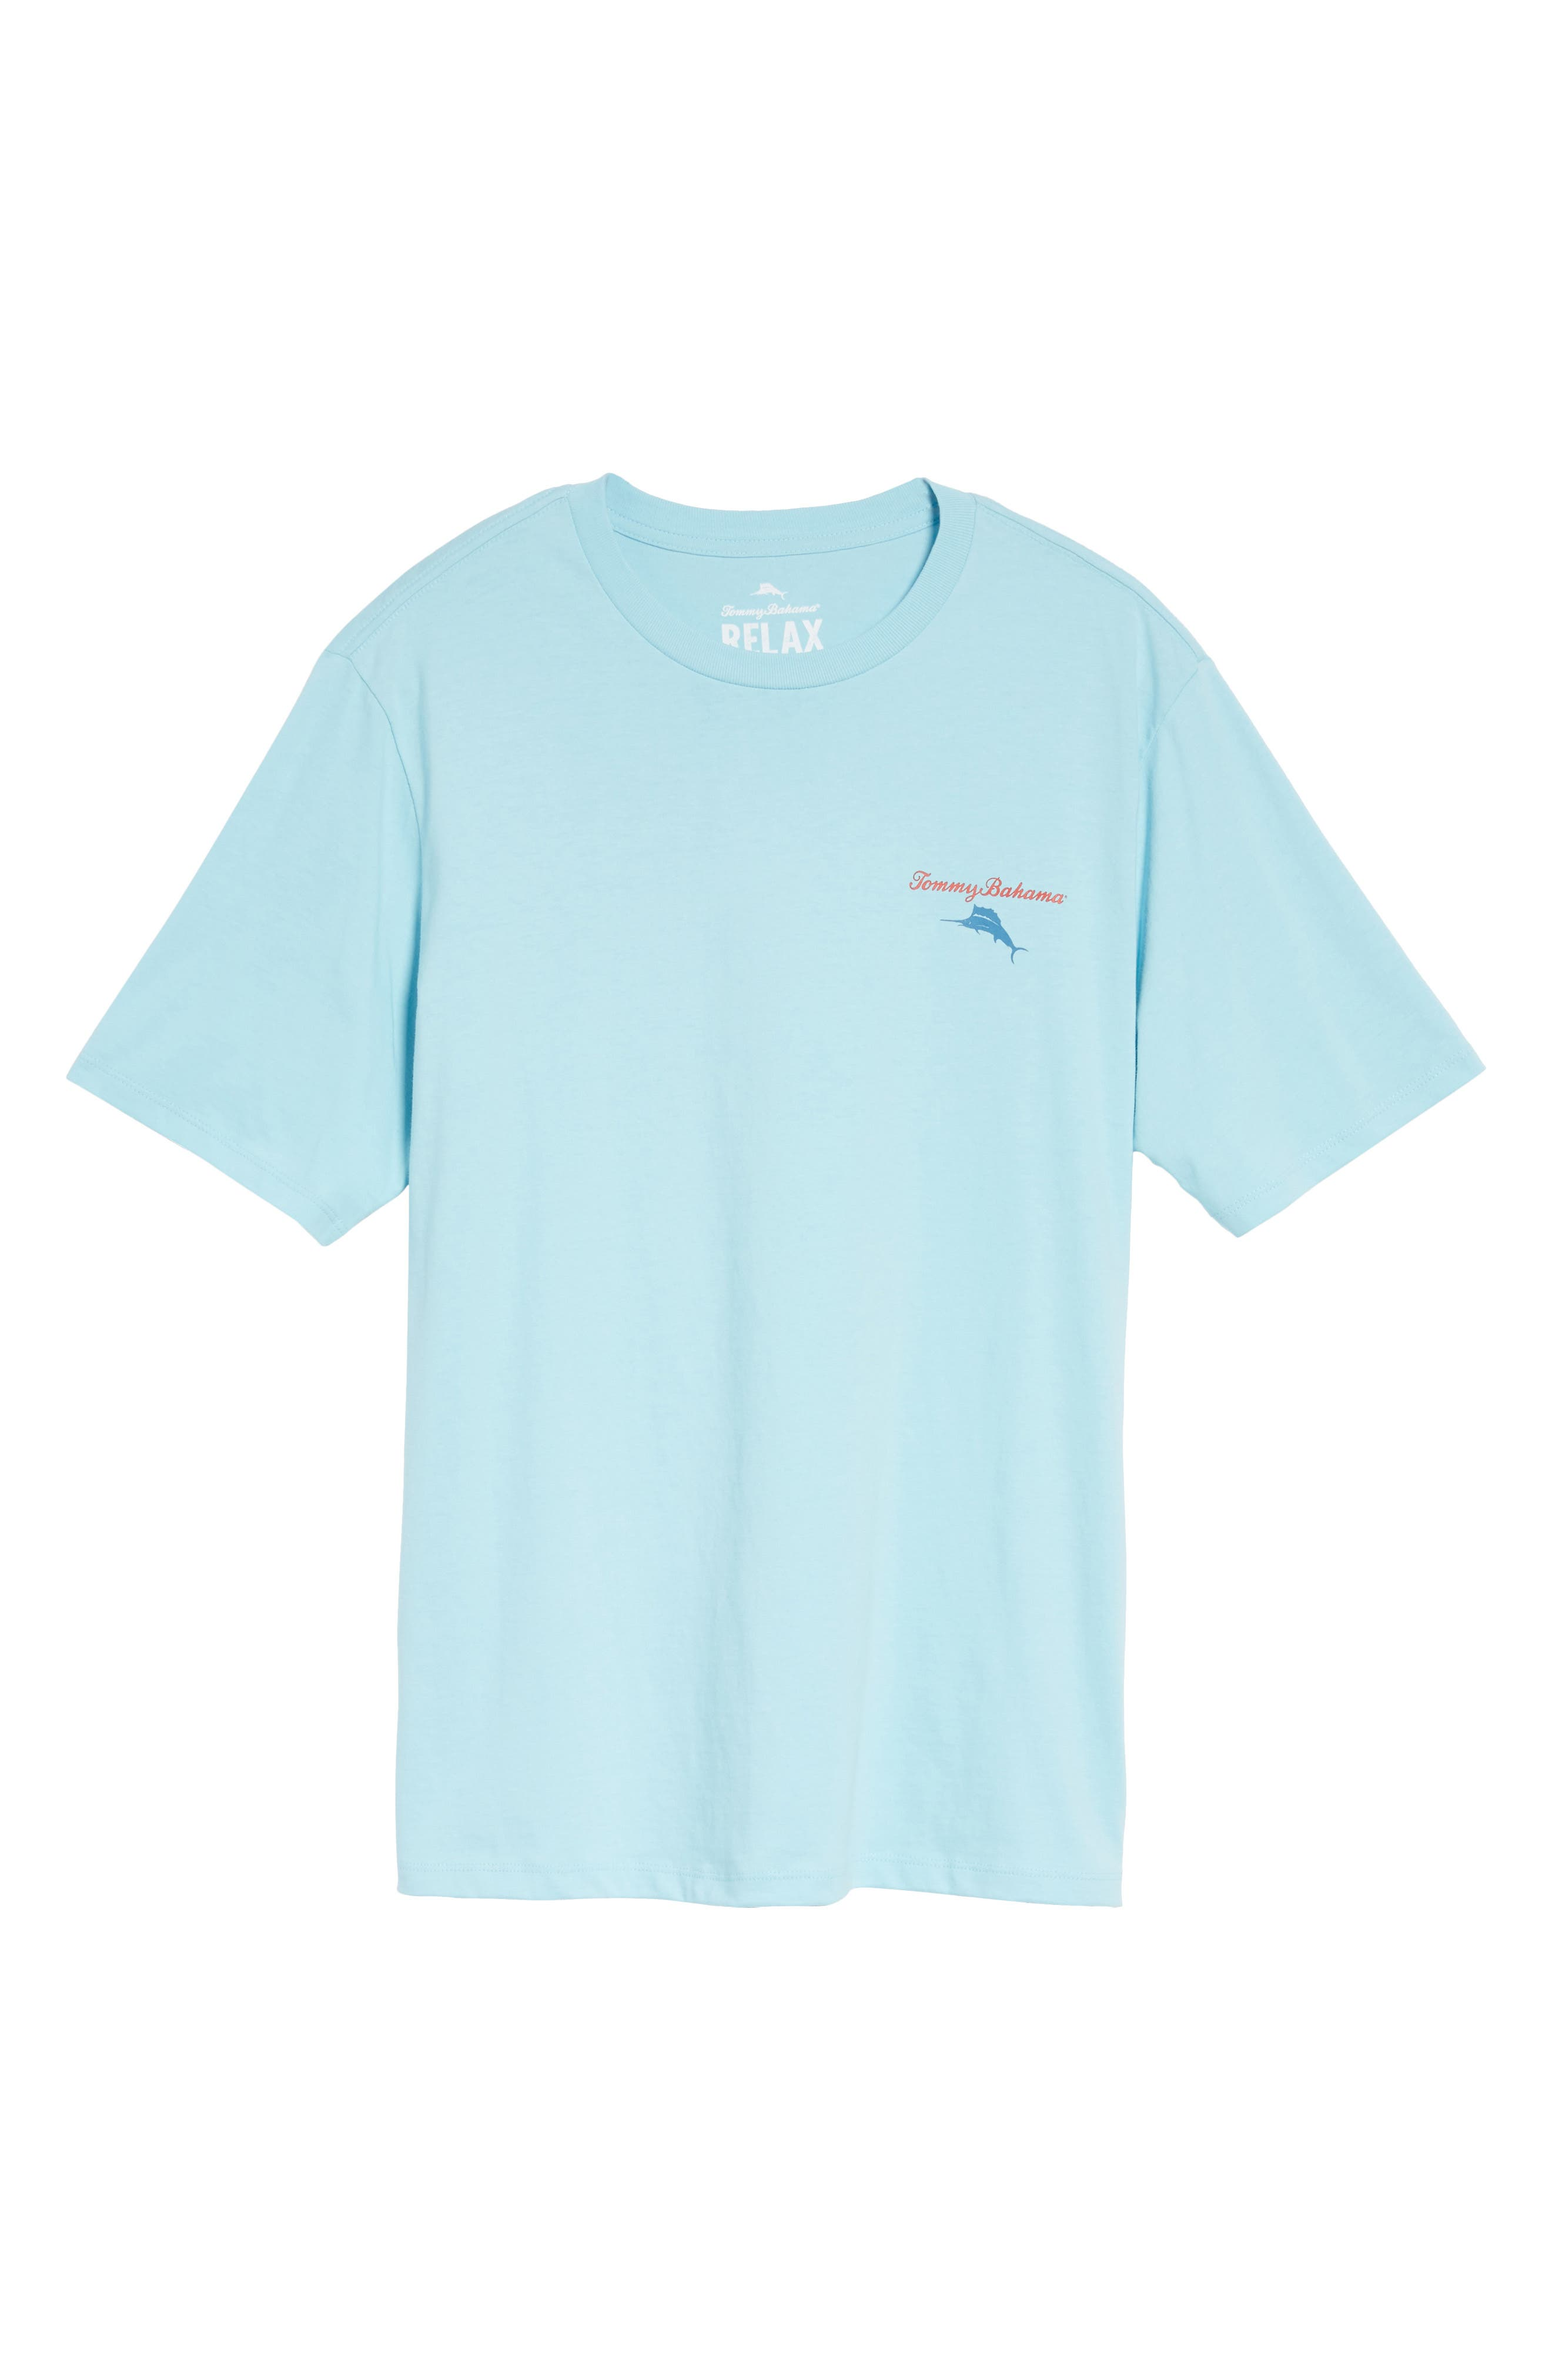 Mr. Ice Guy Graphic T-Shirt,                             Alternate thumbnail 6, color,                             Graceful Sea